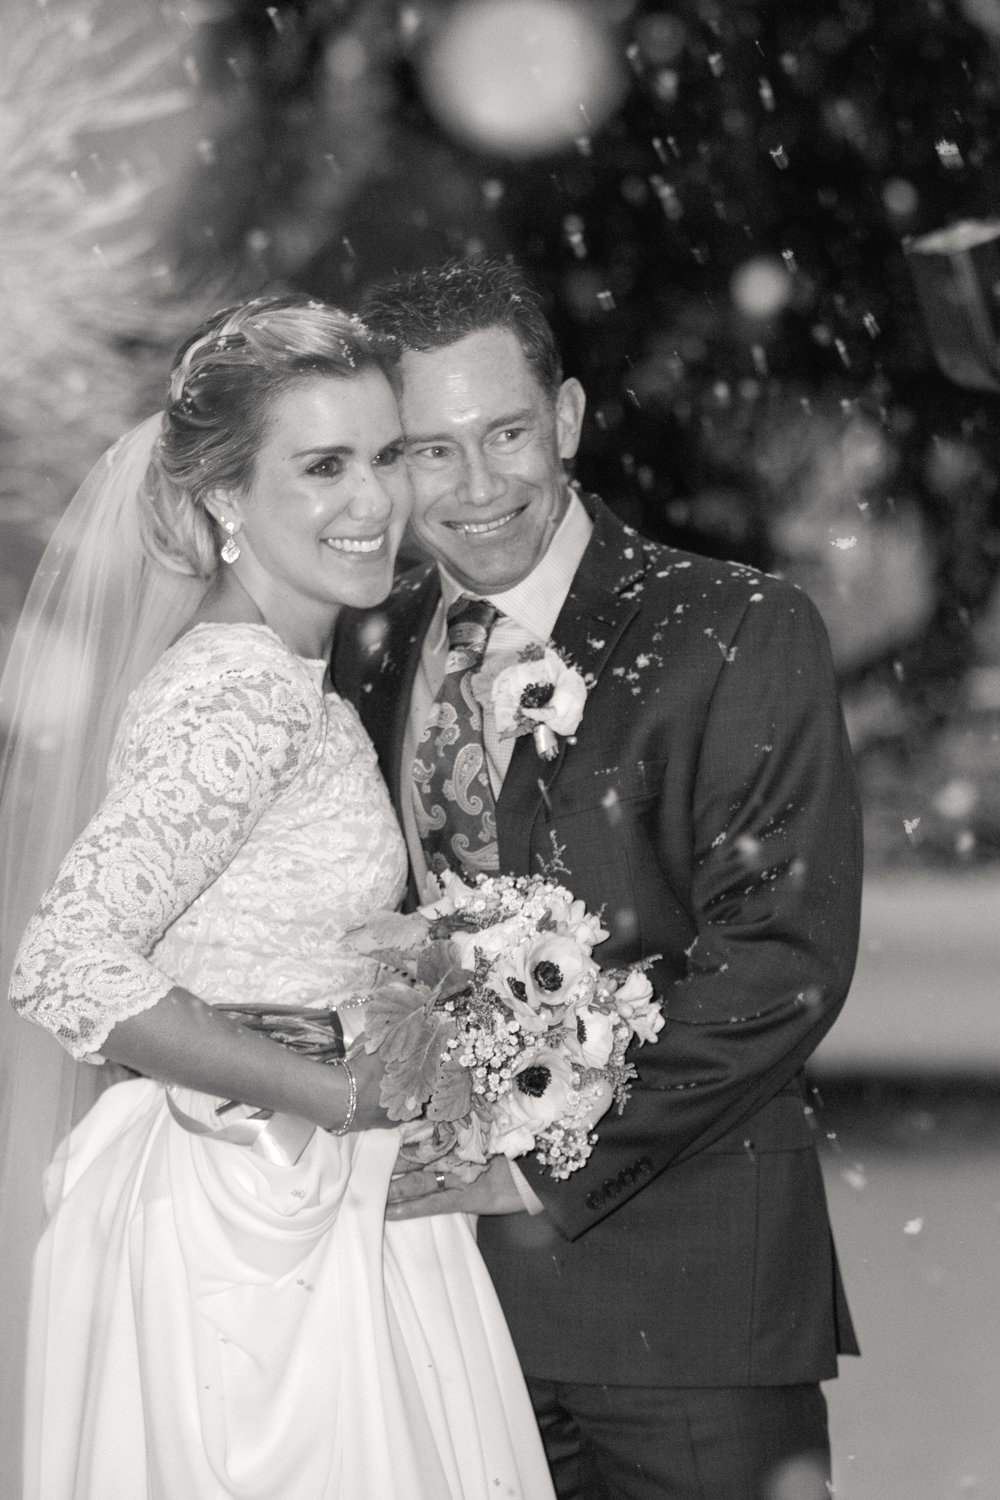 Bride and groom black and white smiling | mary and brad's Outdoor wedding photography at Hudson Gardens | Farm Wedding Photographer | Apollo Fields Wedding Photojournalism